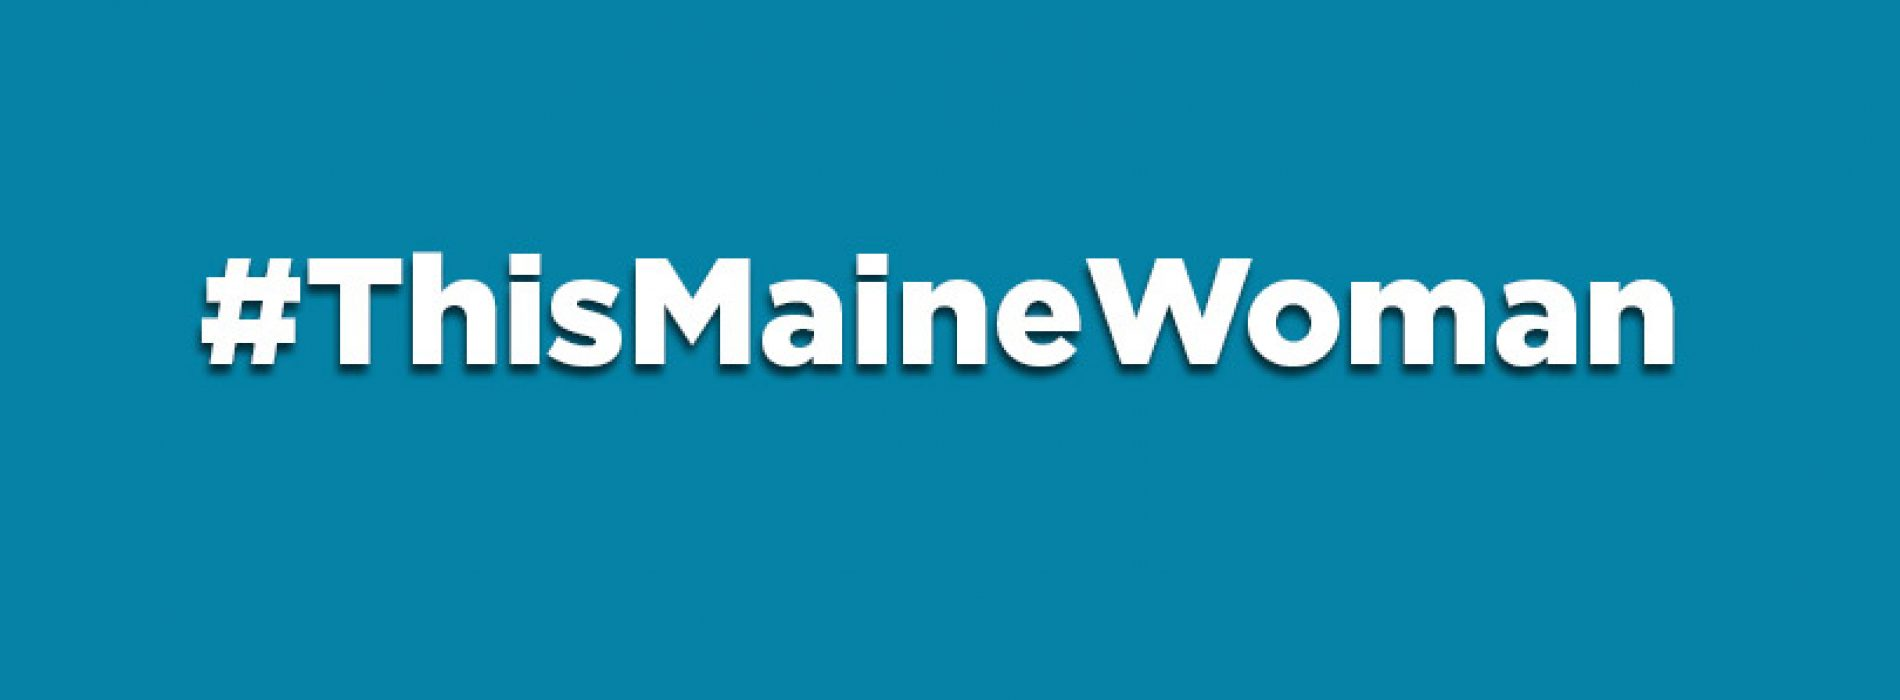 #ThisMaineWoman hashtag takes social media by storm